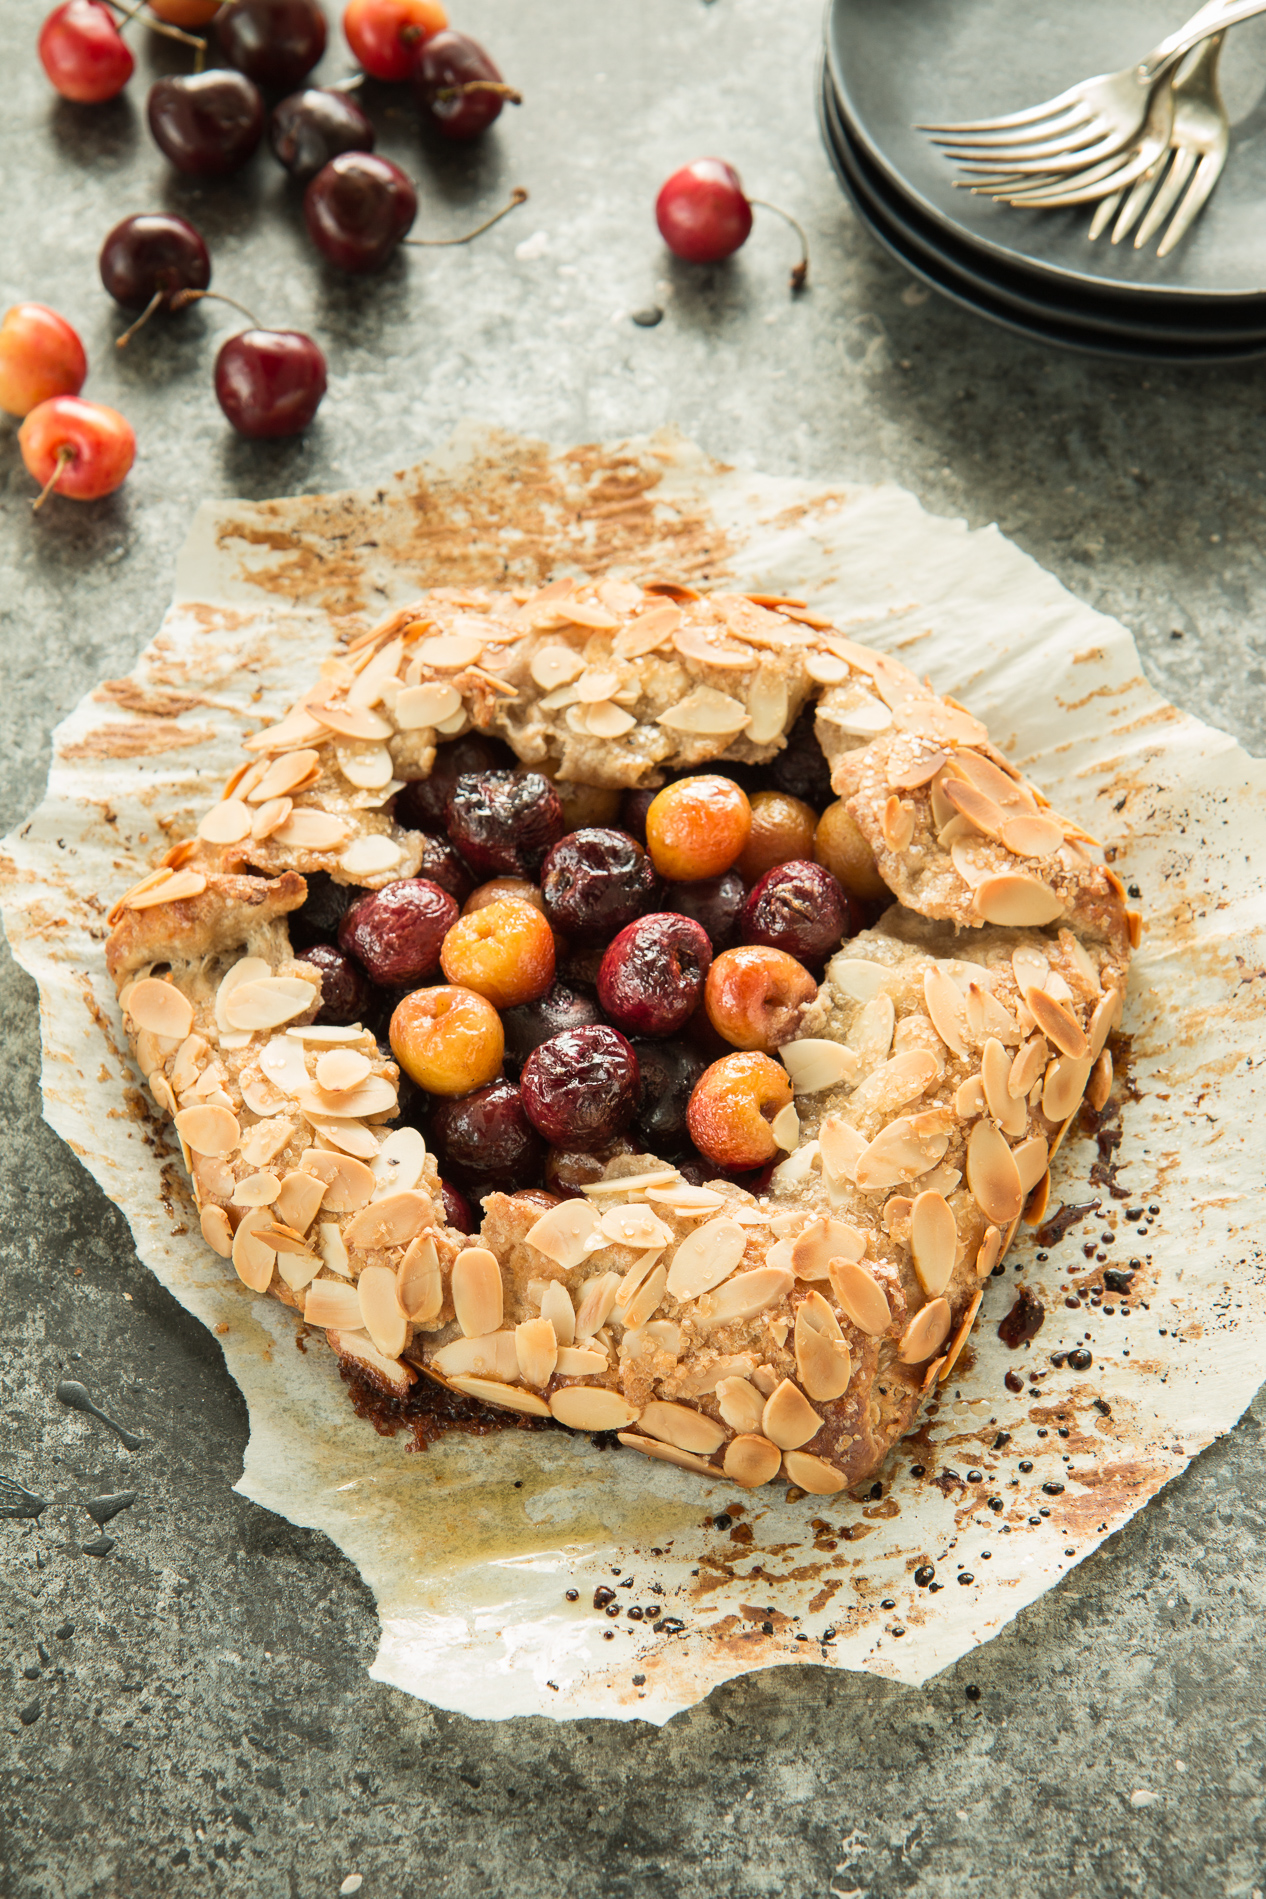 Cherry Galette with Almond Crust